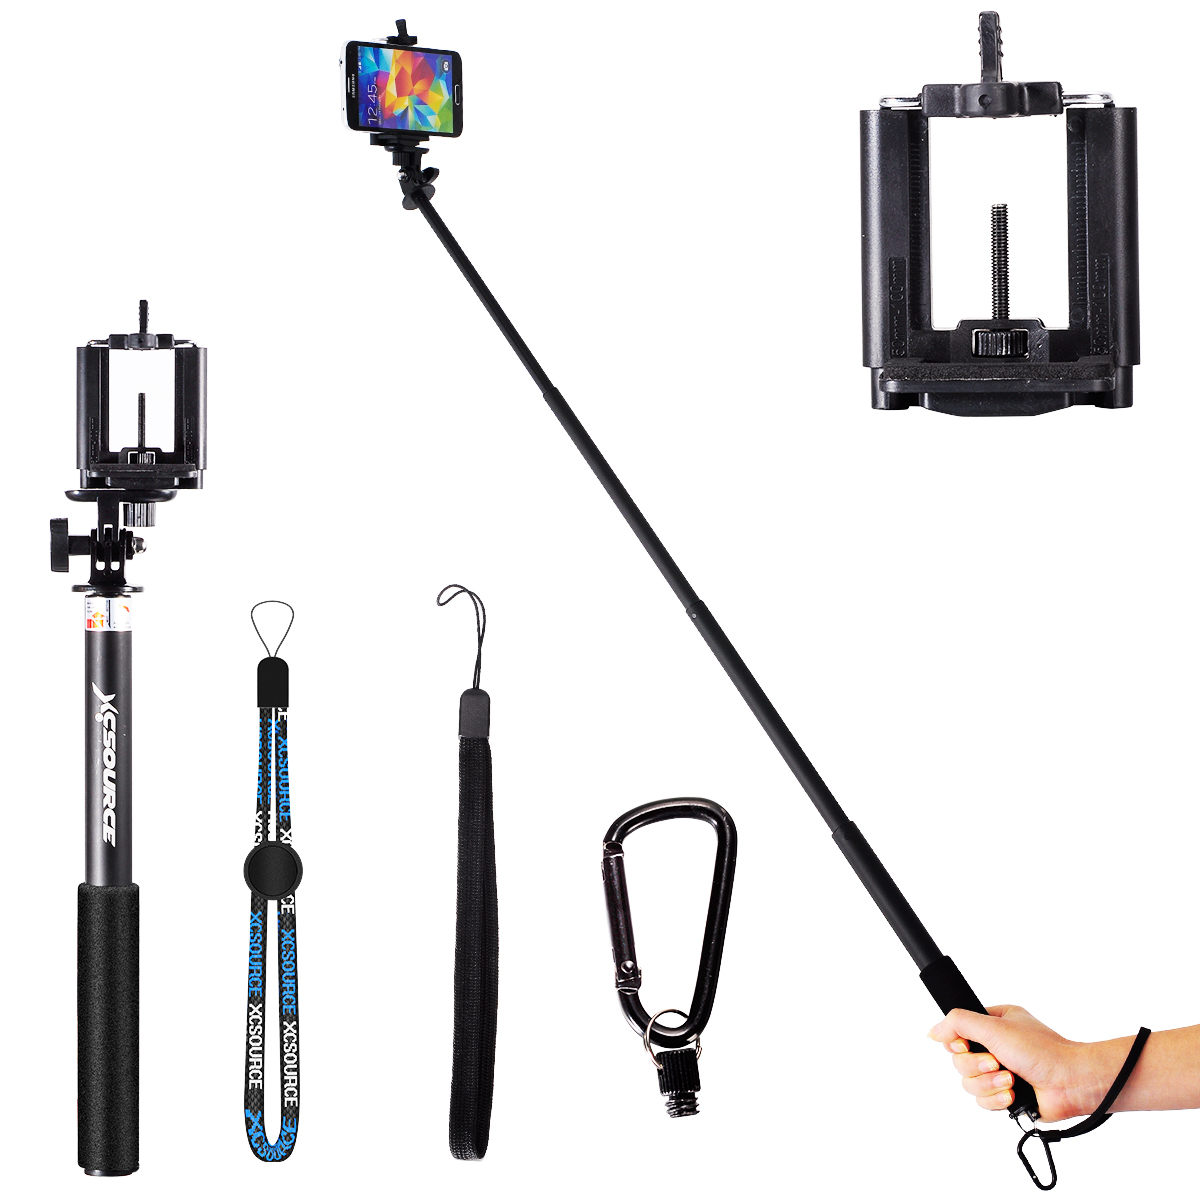 neu xcsource selfie stick monopod pole clip for iphone 5s 6 for gopro 2 ebay. Black Bedroom Furniture Sets. Home Design Ideas